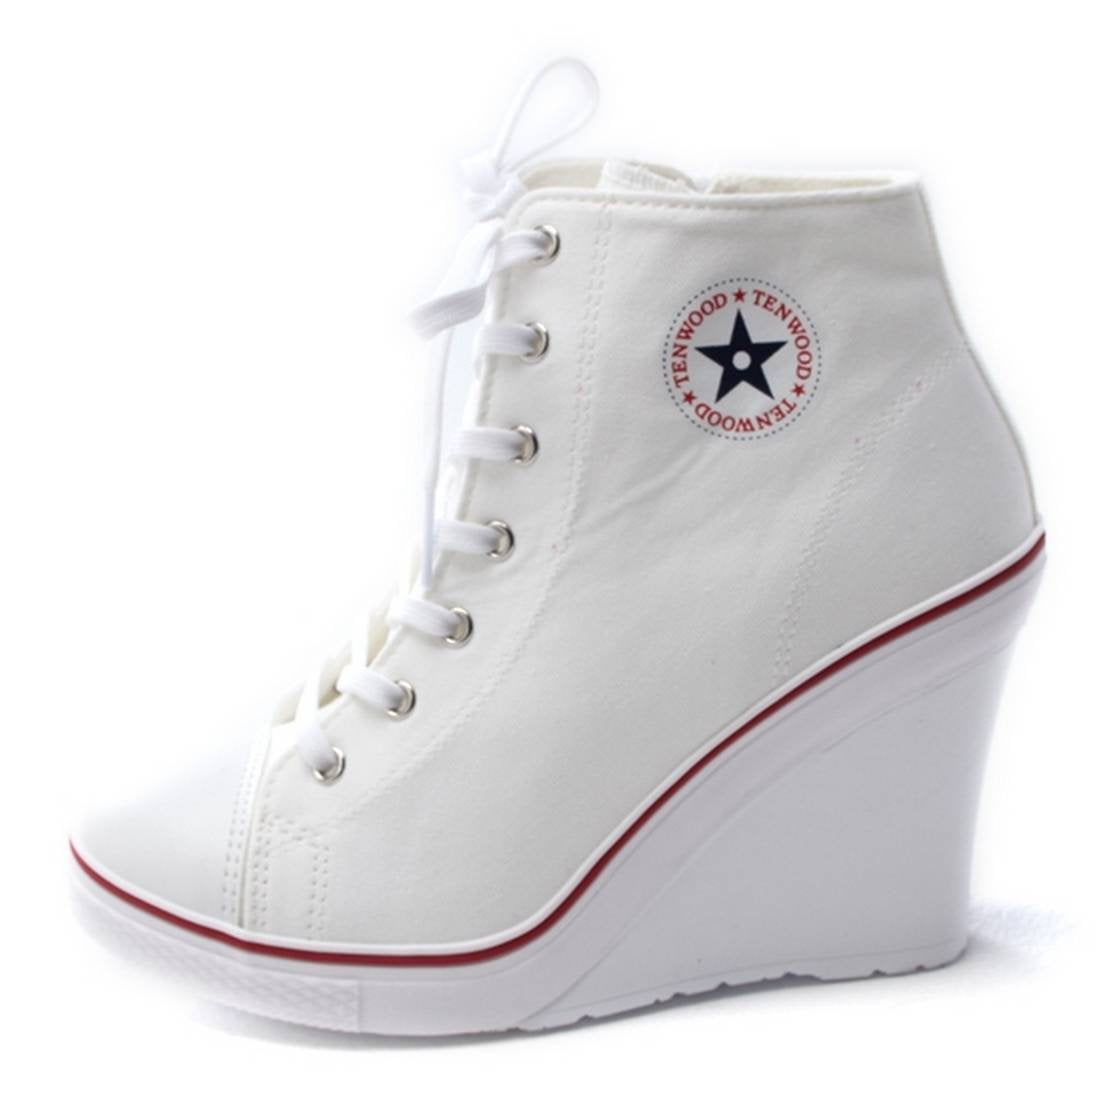 EpicStep Women's Canvas High Top Wedges High Heels Casual Fashion Sneakers